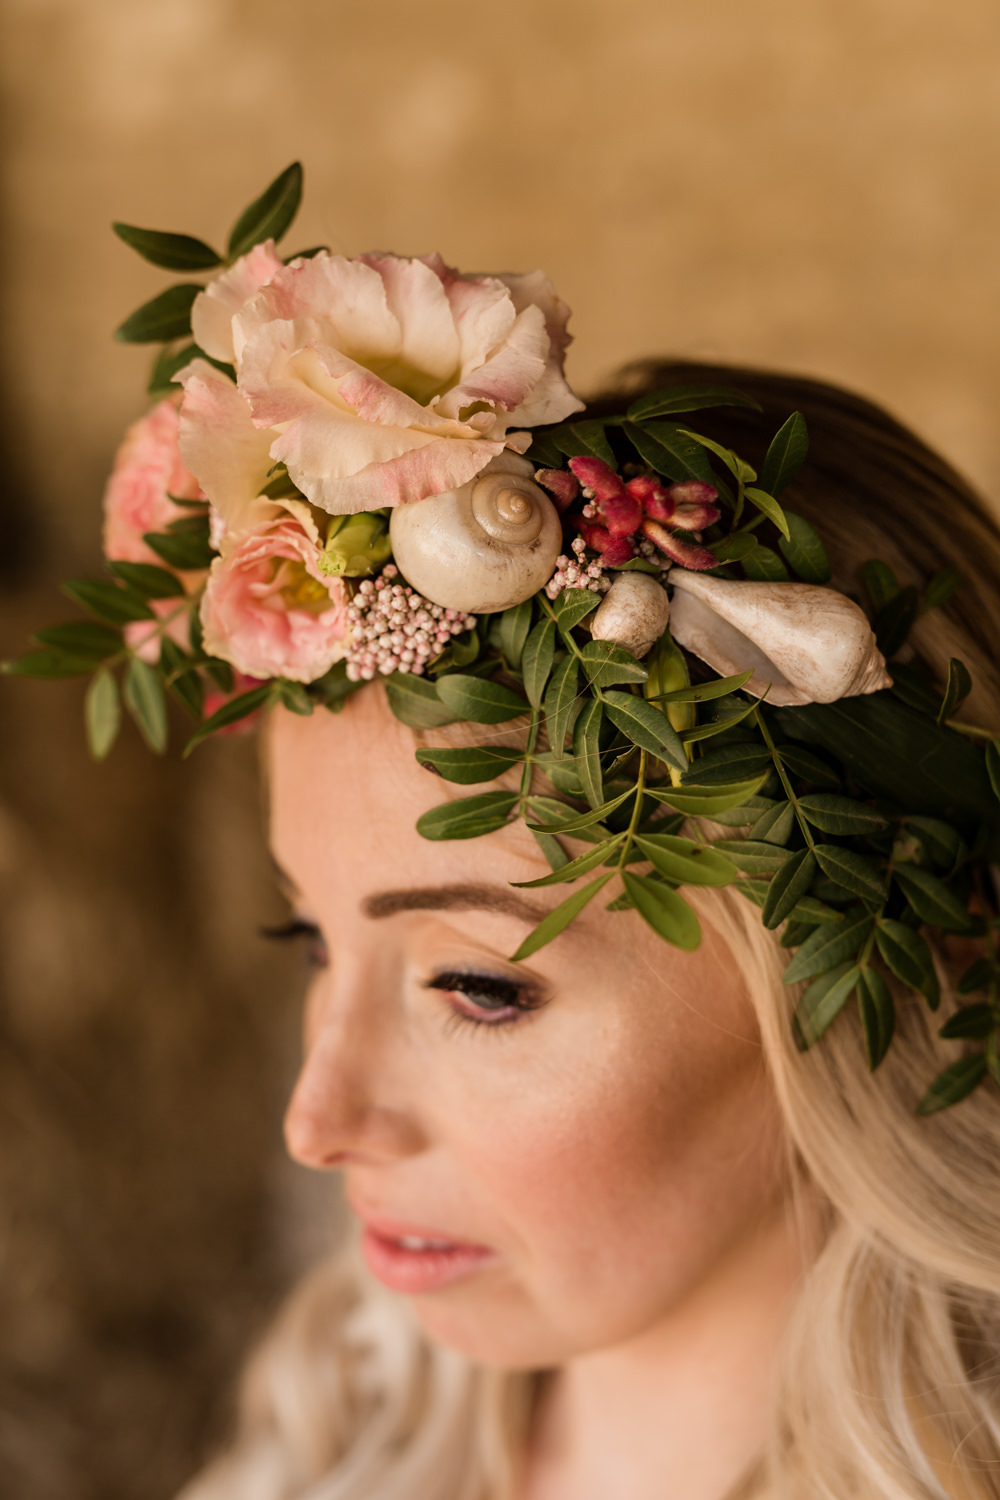 Rosemary Pistache Eustoma Flowers Bride Bridal Pink Foliage Greenery Shells Crown Tropical Boho Countryside Wedding Ideas Sarah Brookes Photography